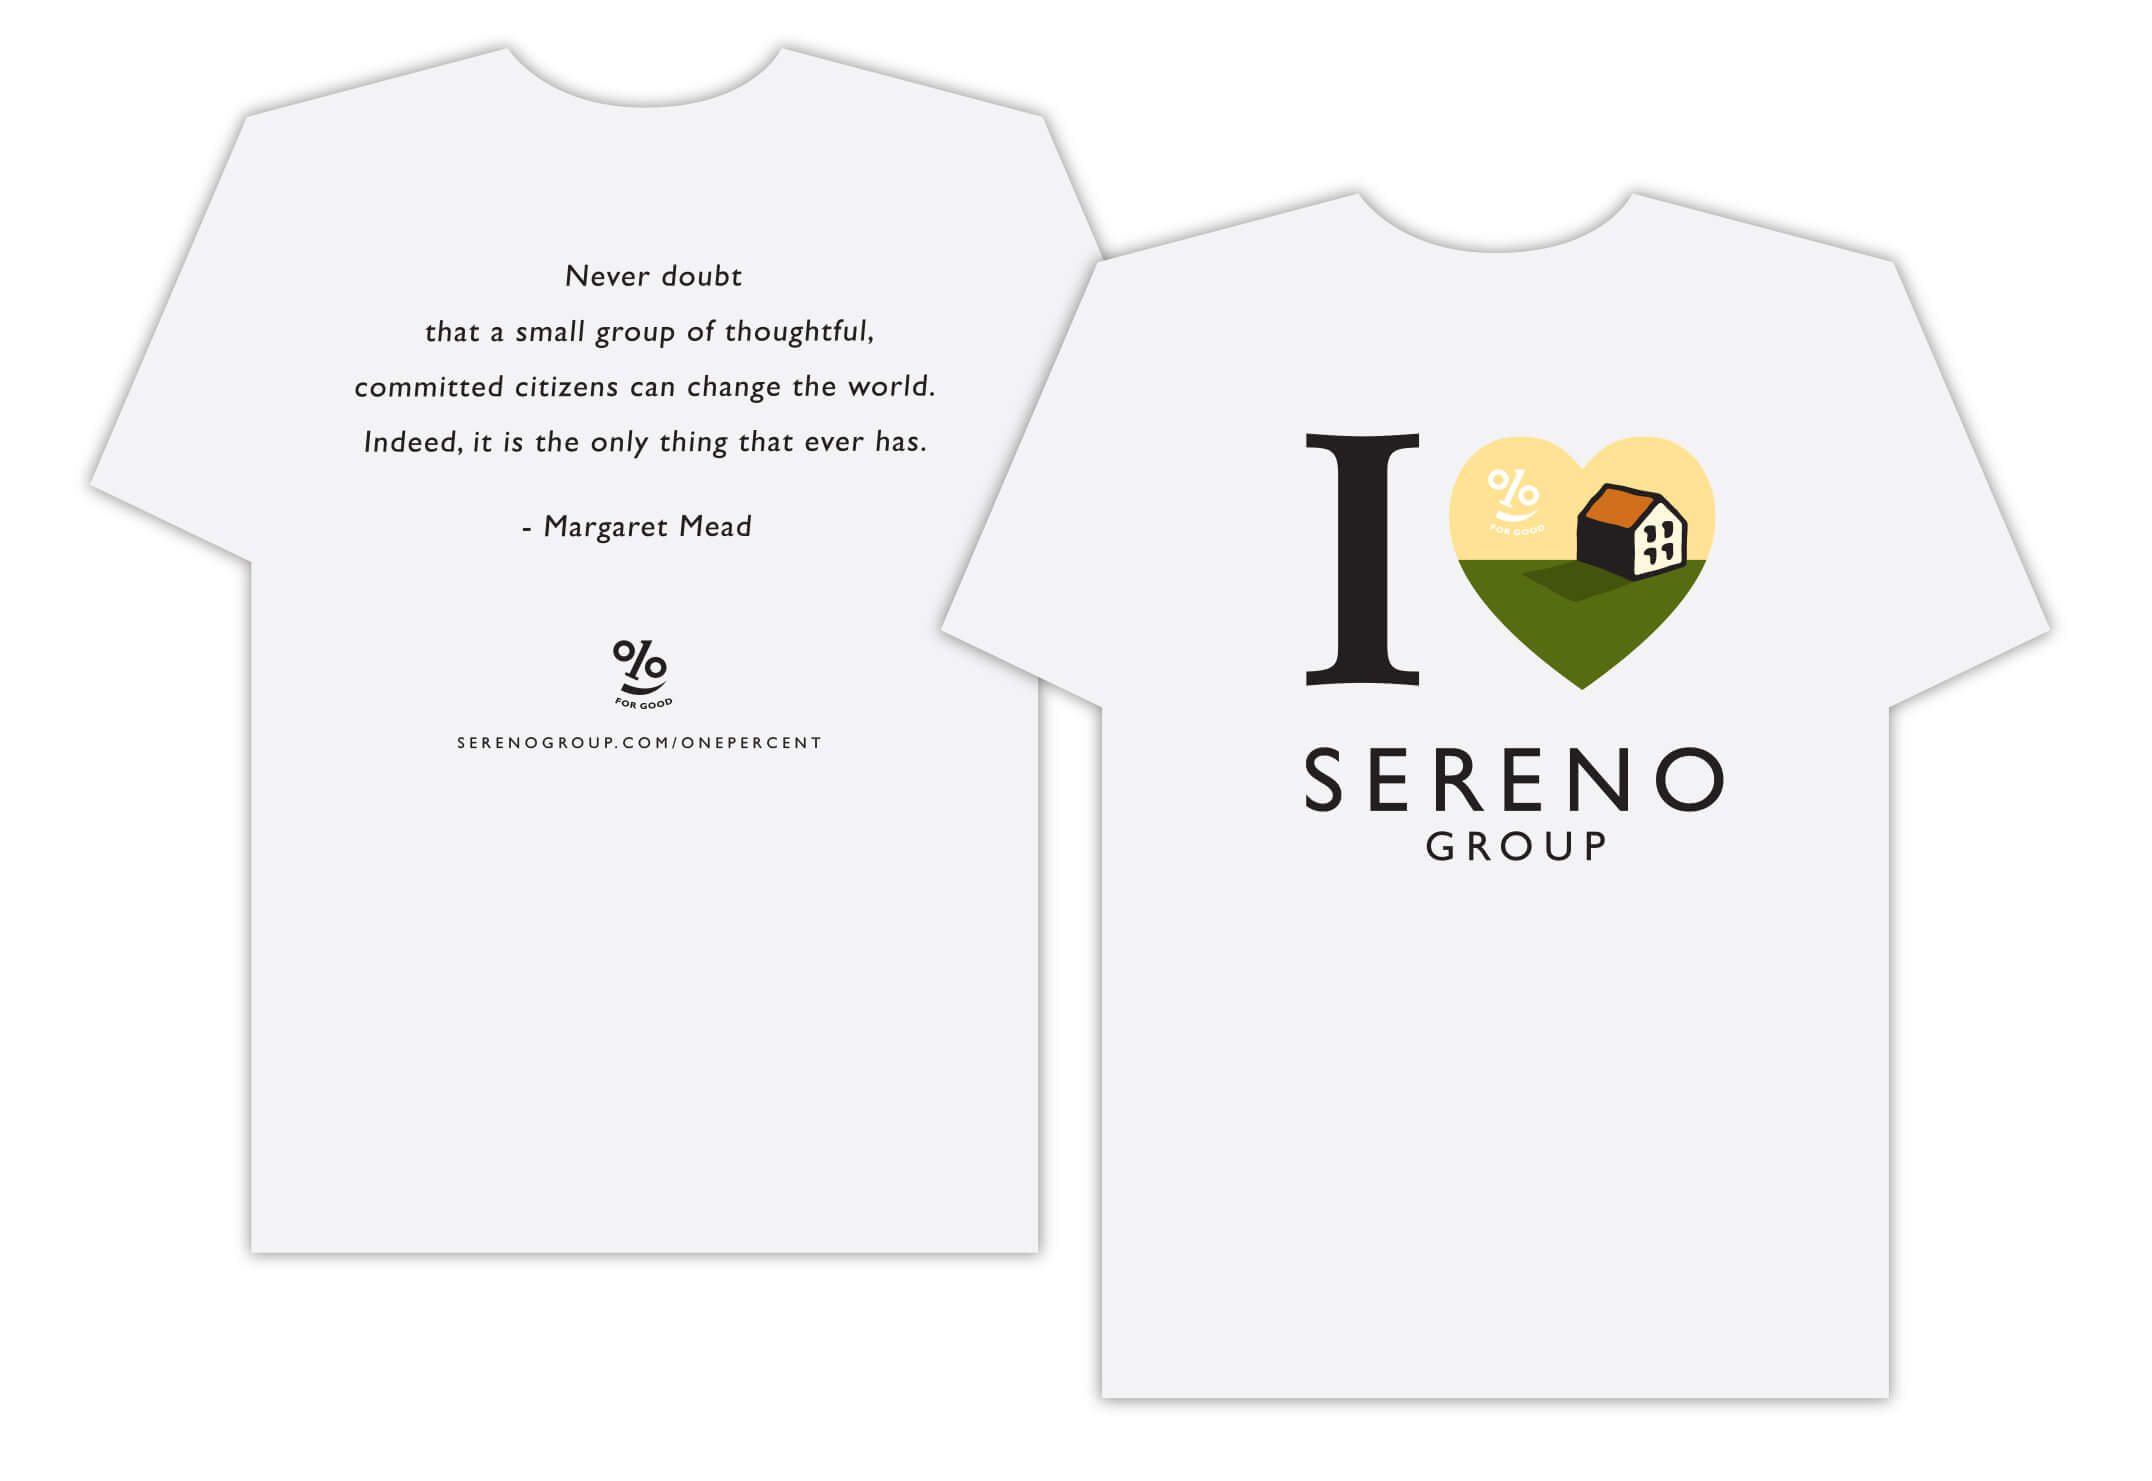 Sereno Group Generic Shirt - One Percent for Good